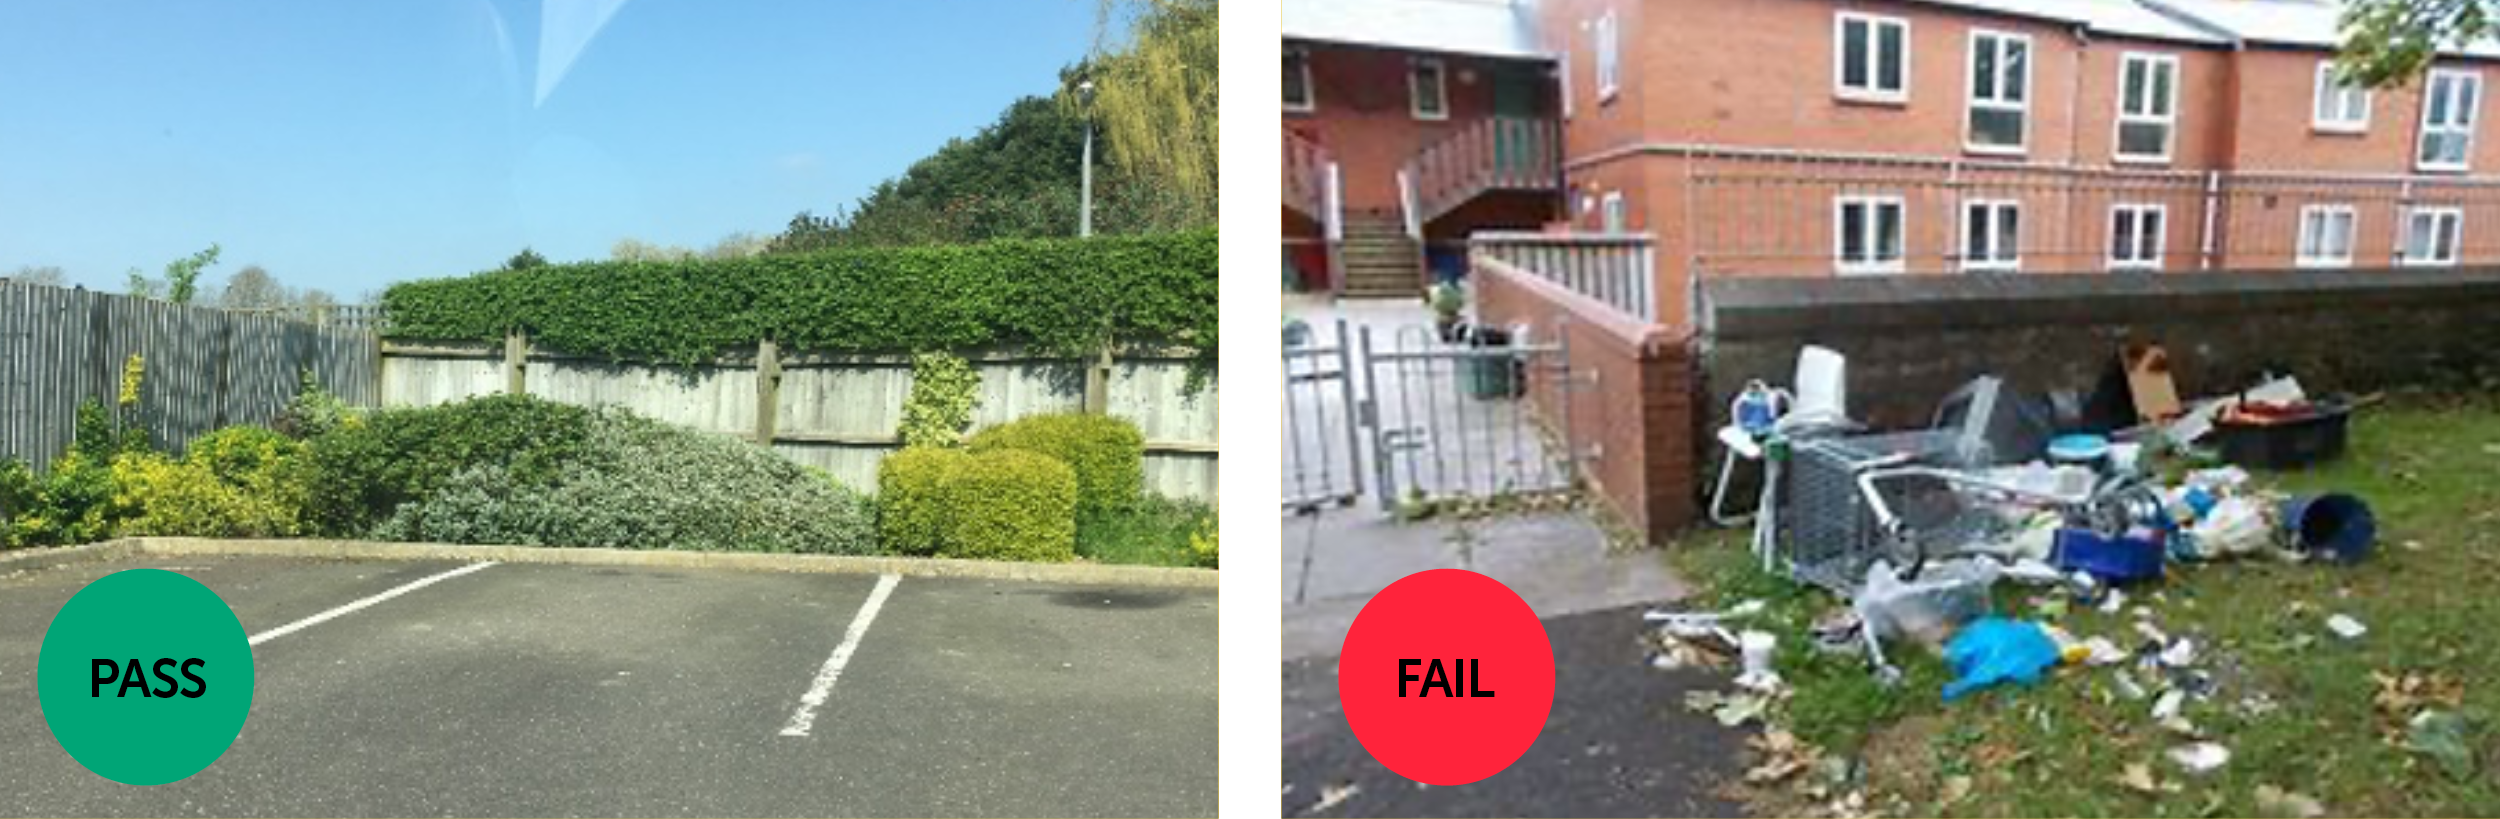 Neighbourhood cleanliness standards image guide